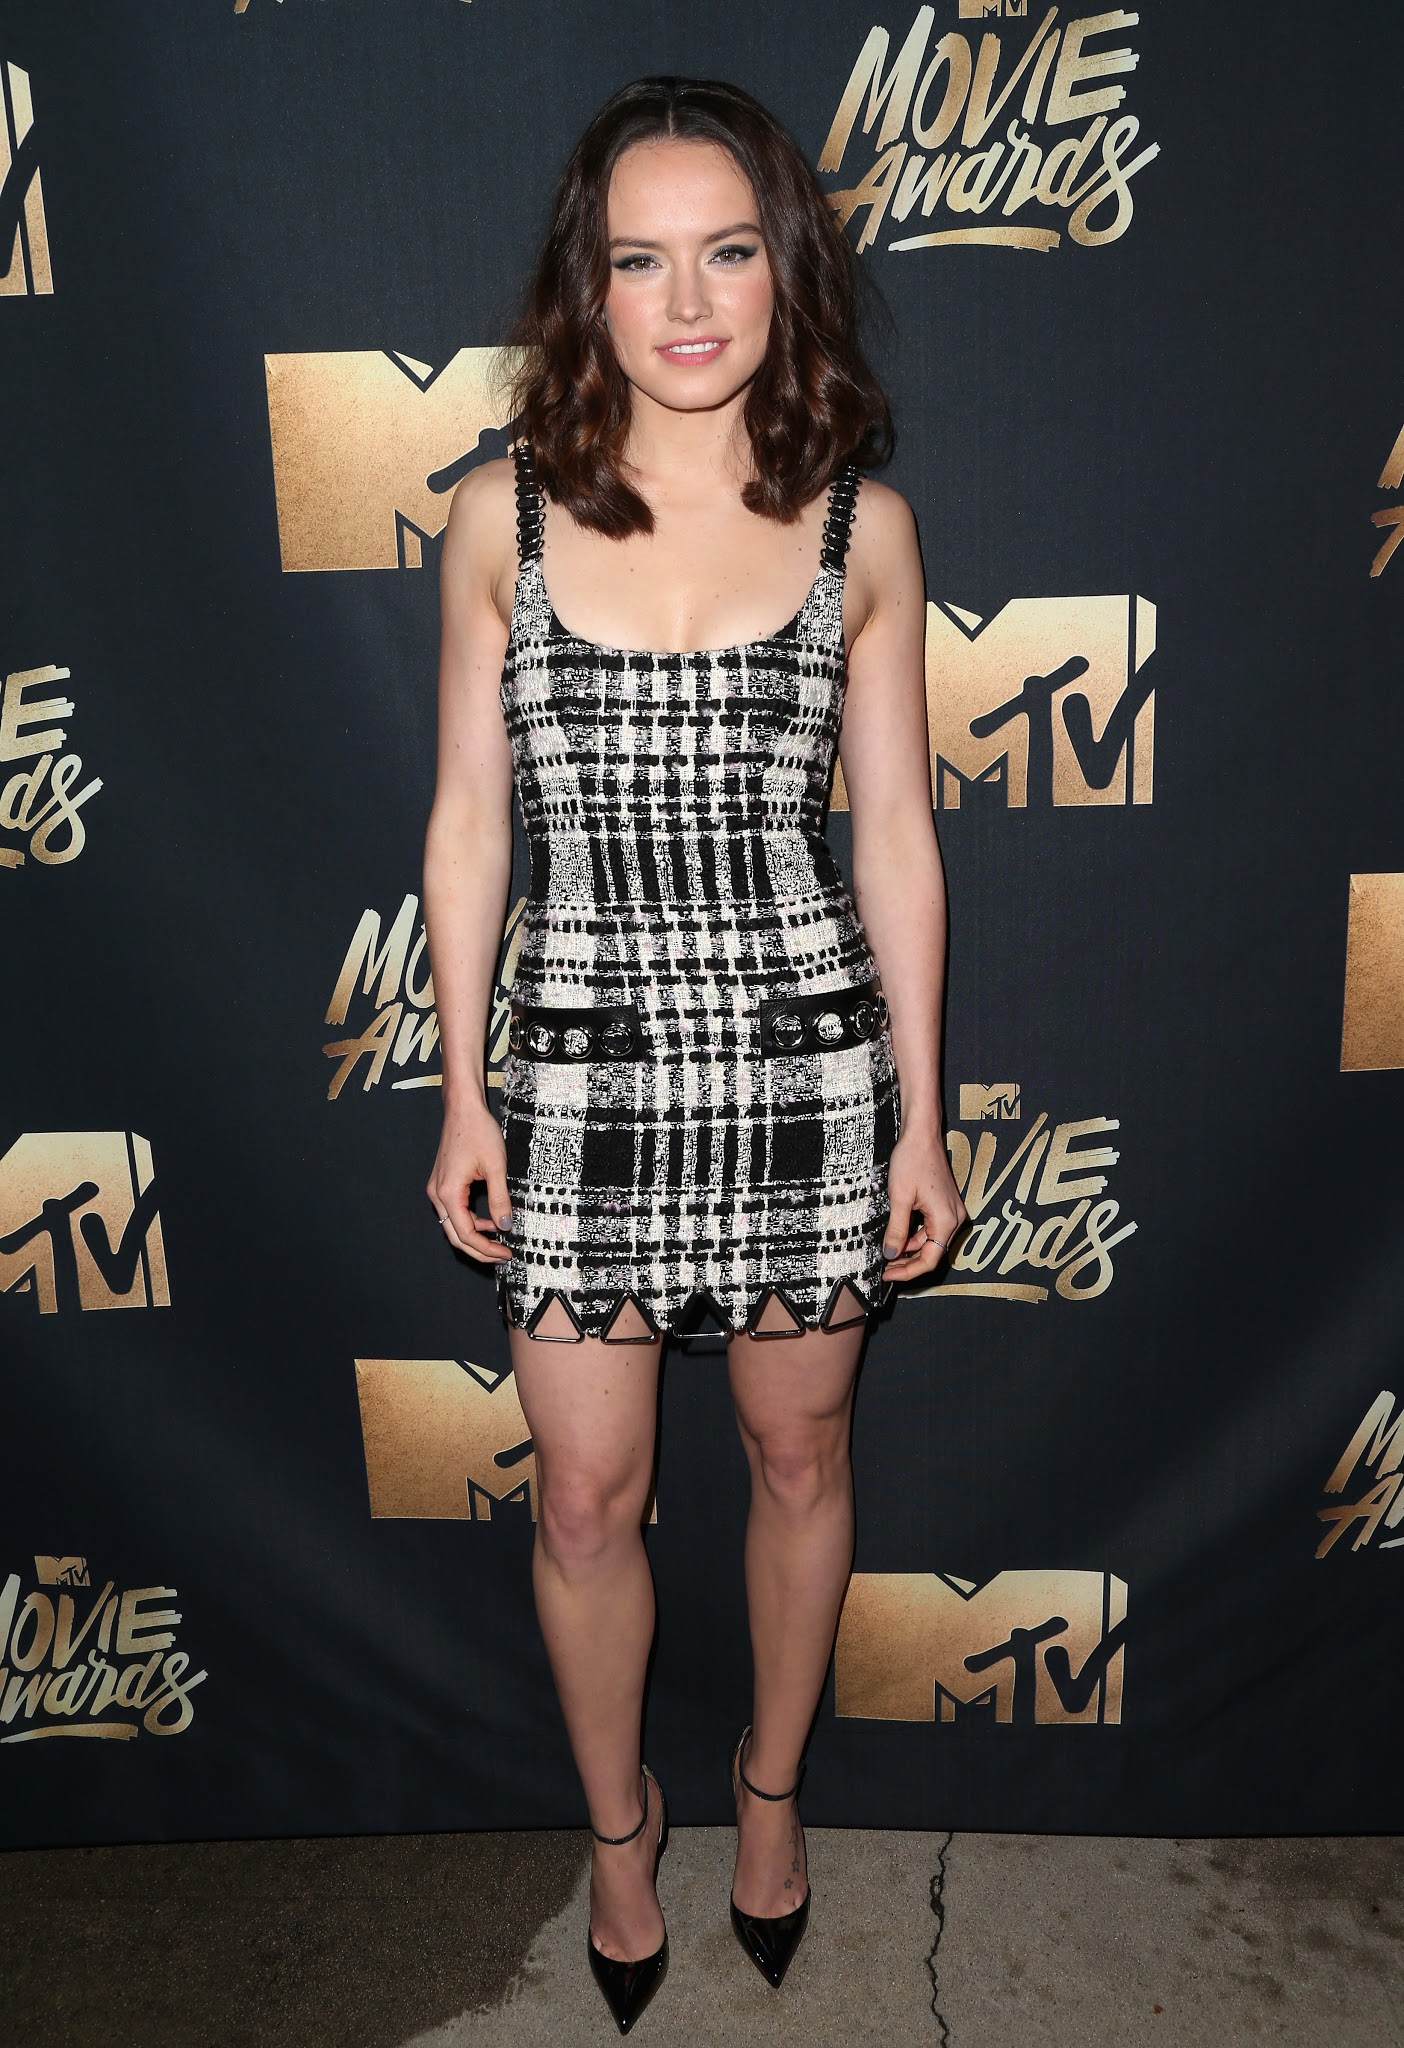 Cleavage Daisy Ridley nudes (24 photo), Sexy, Sideboobs, Feet, cleavage 2018